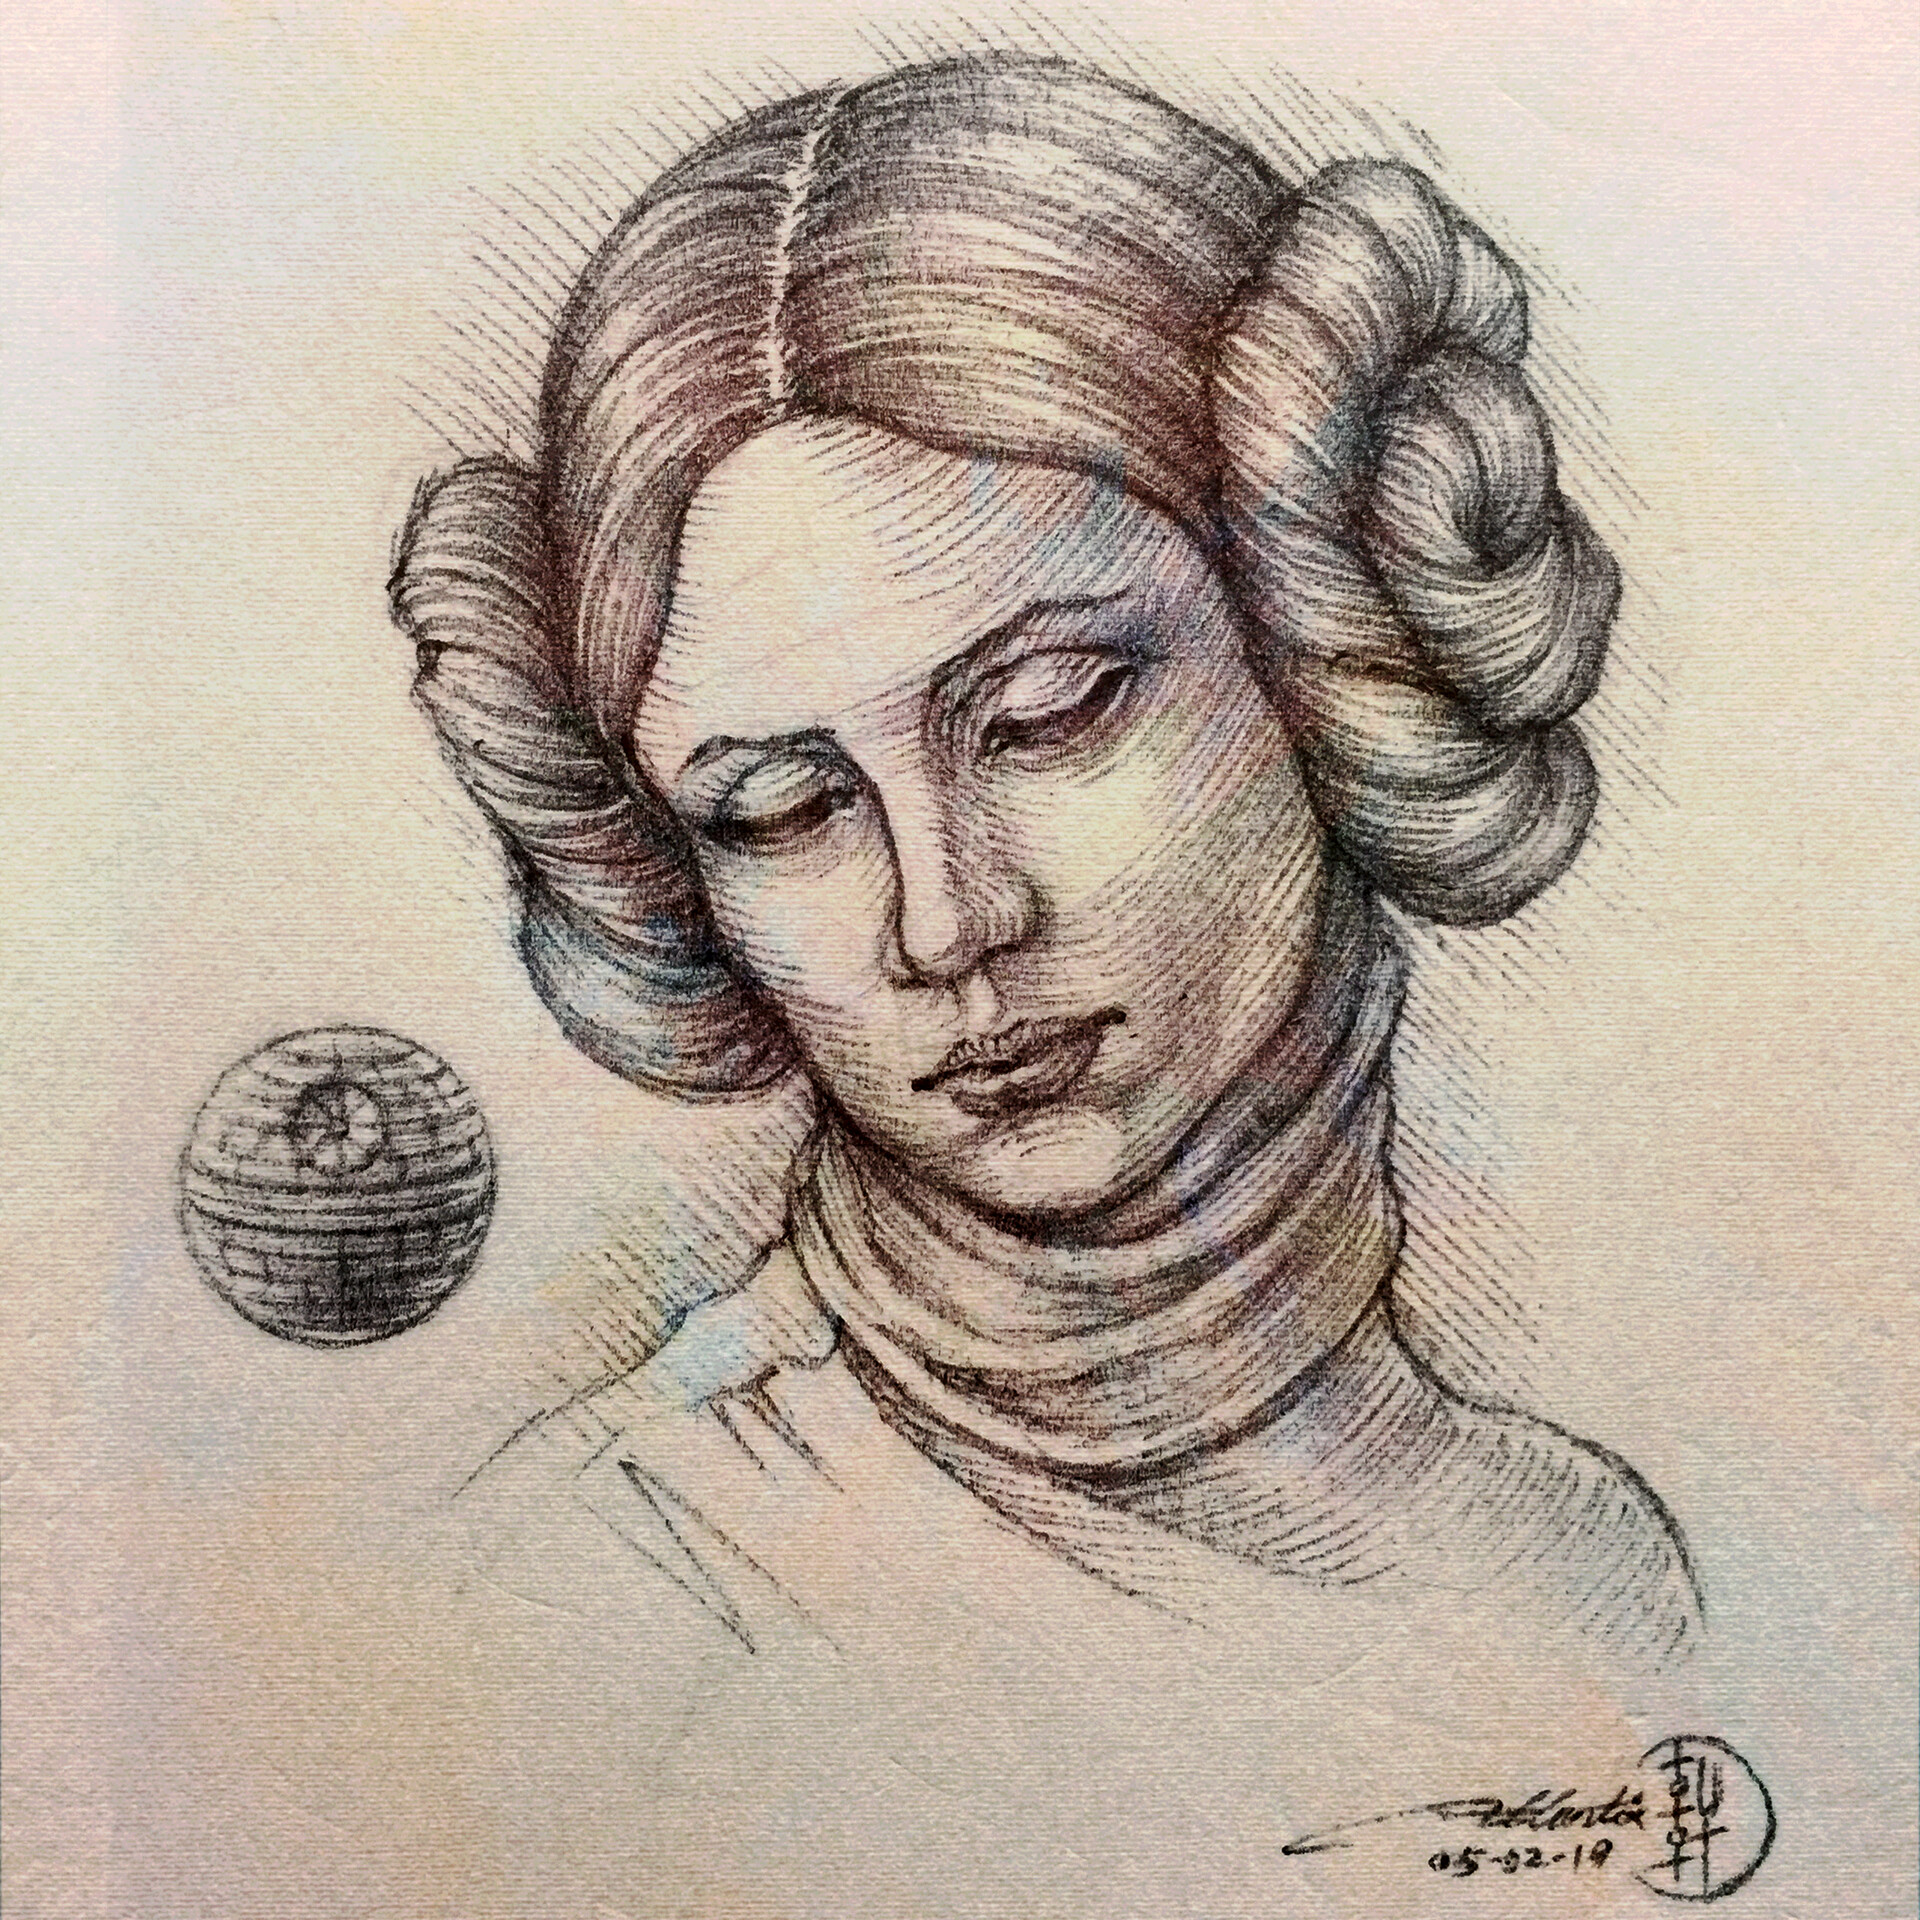 Study for the Head of Leia - Sketch